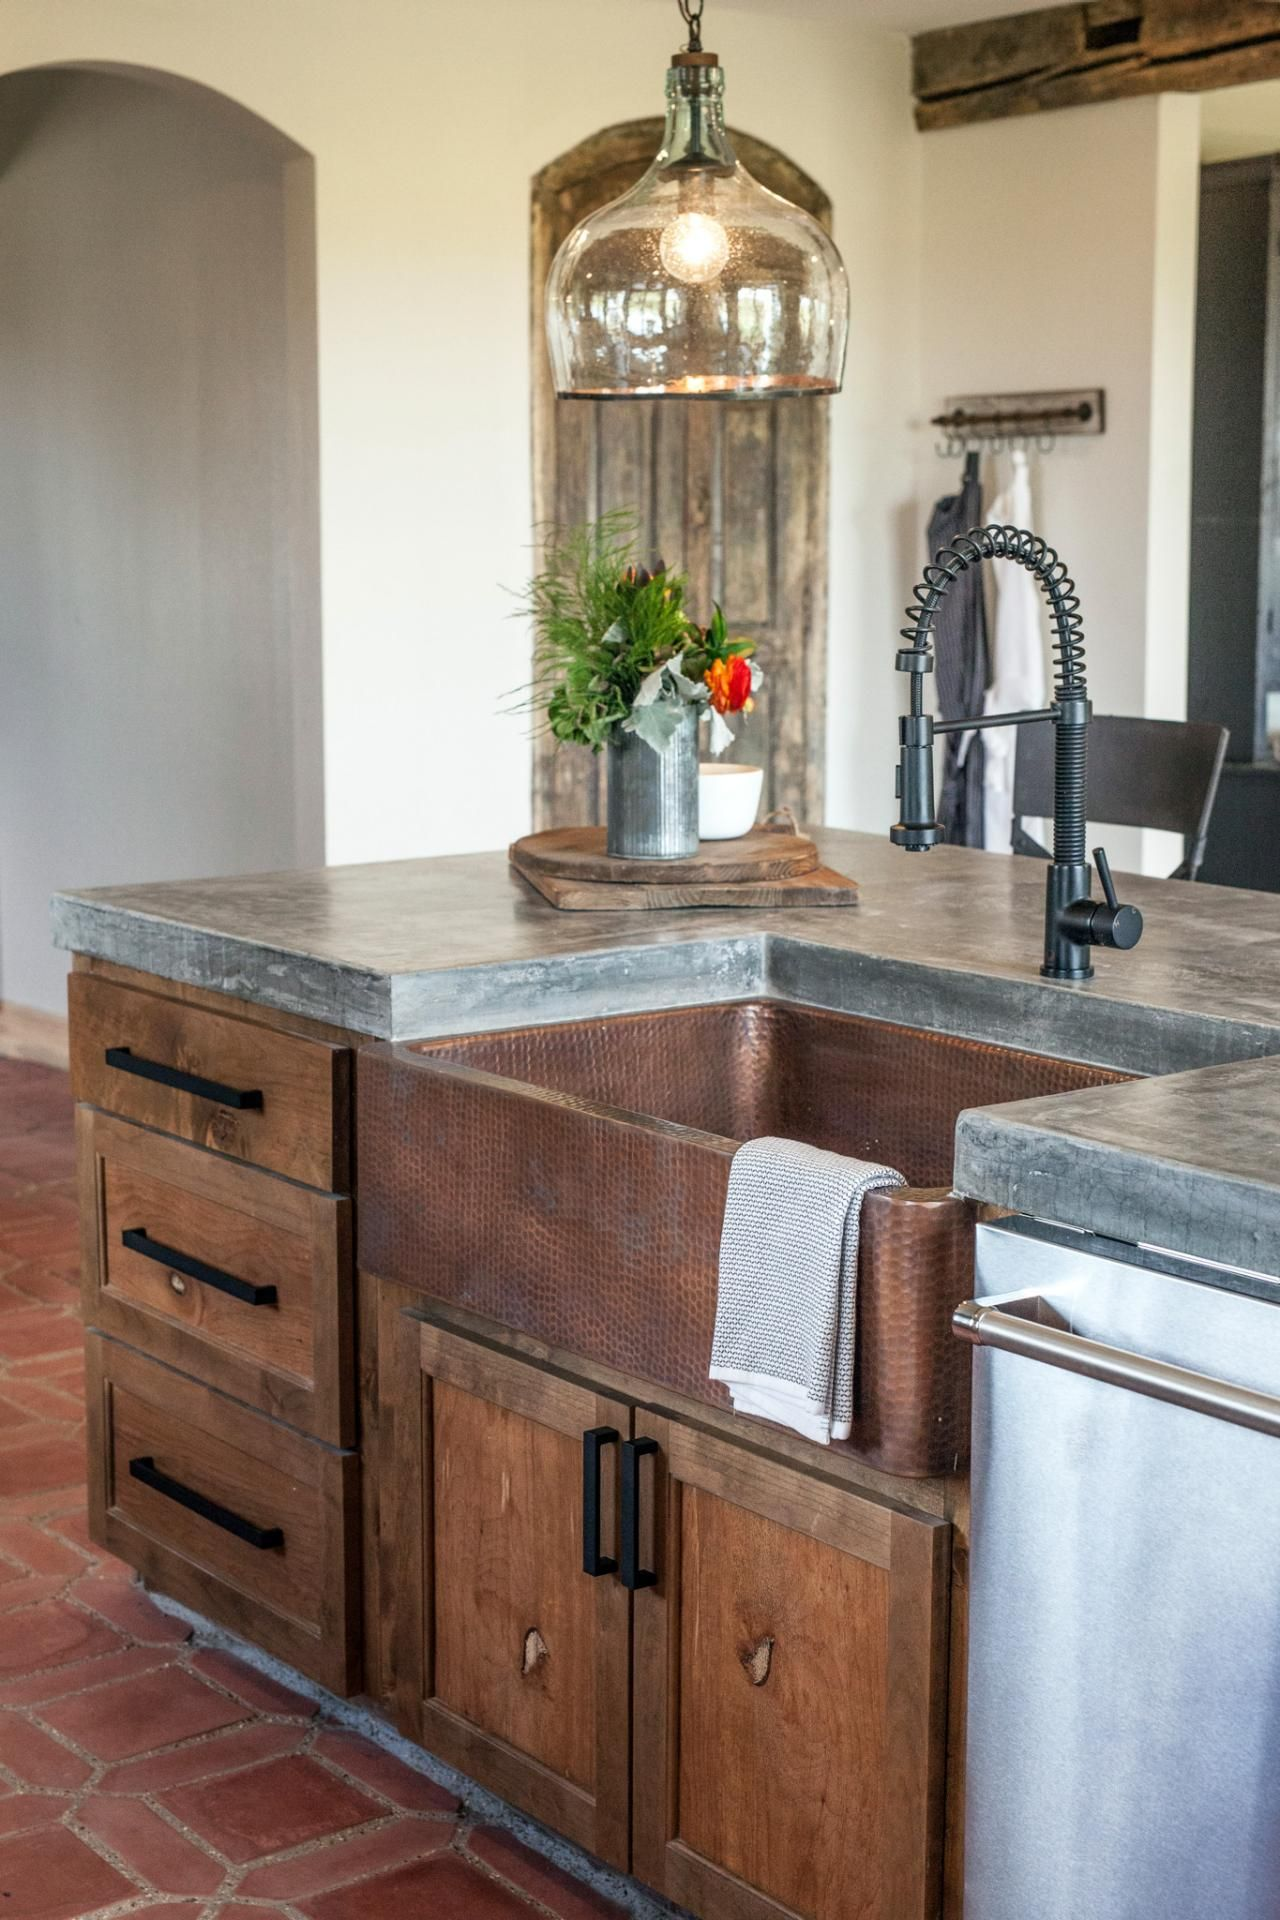 joannas design tips southwestern style for a run down ranch house - Home Design Tips